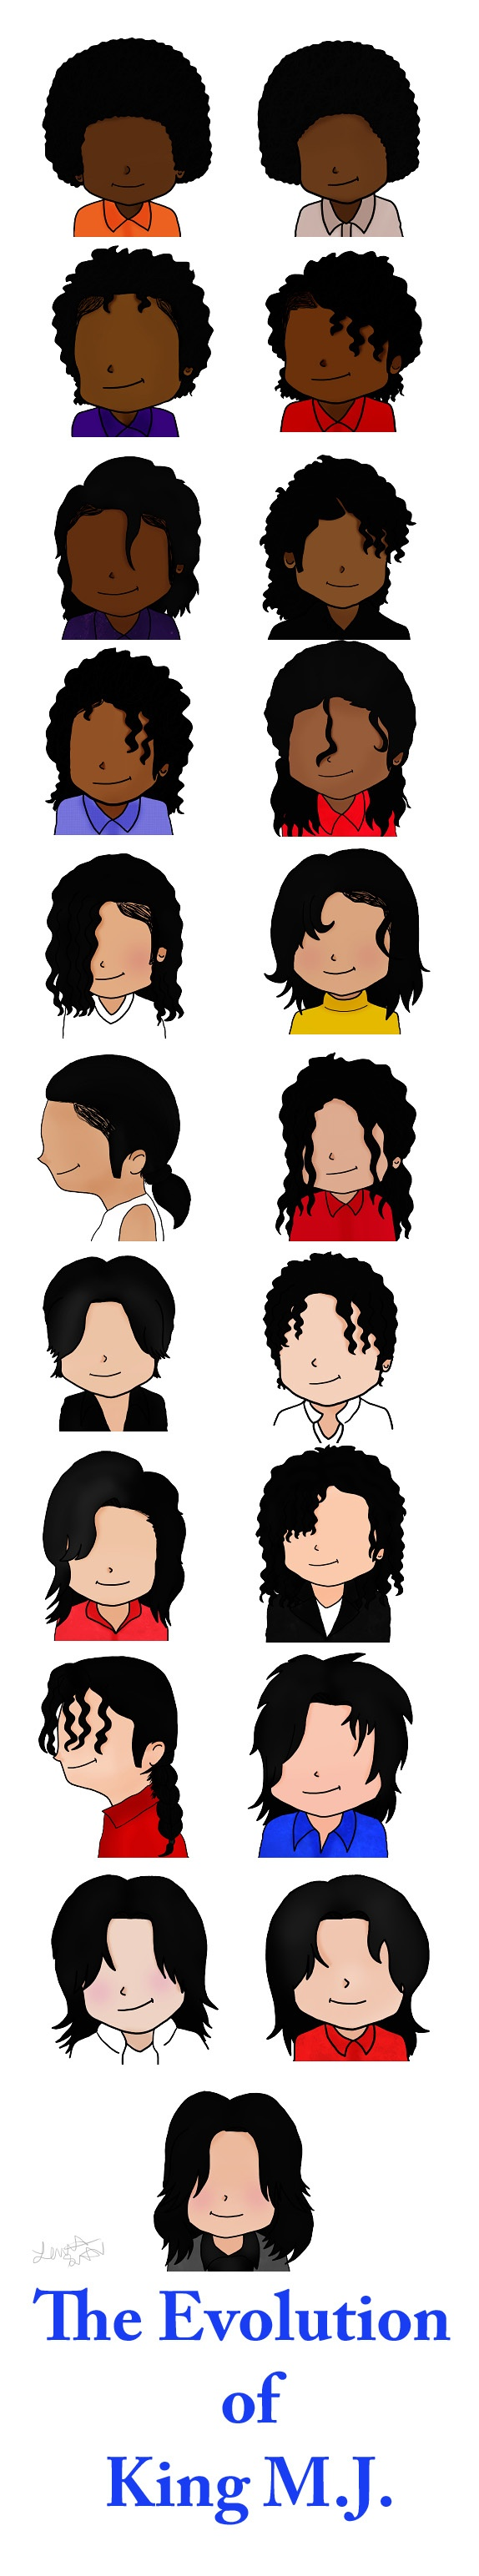 MJ's hairstyles over the years